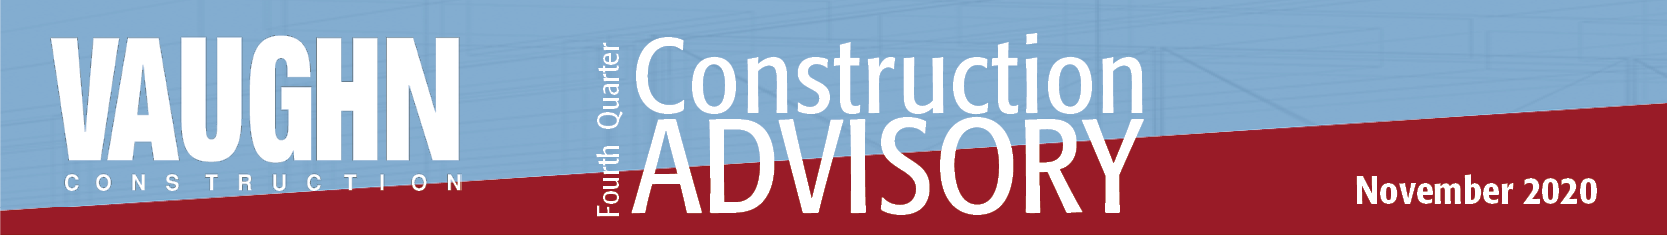 Construction Advisory_Q2 2020